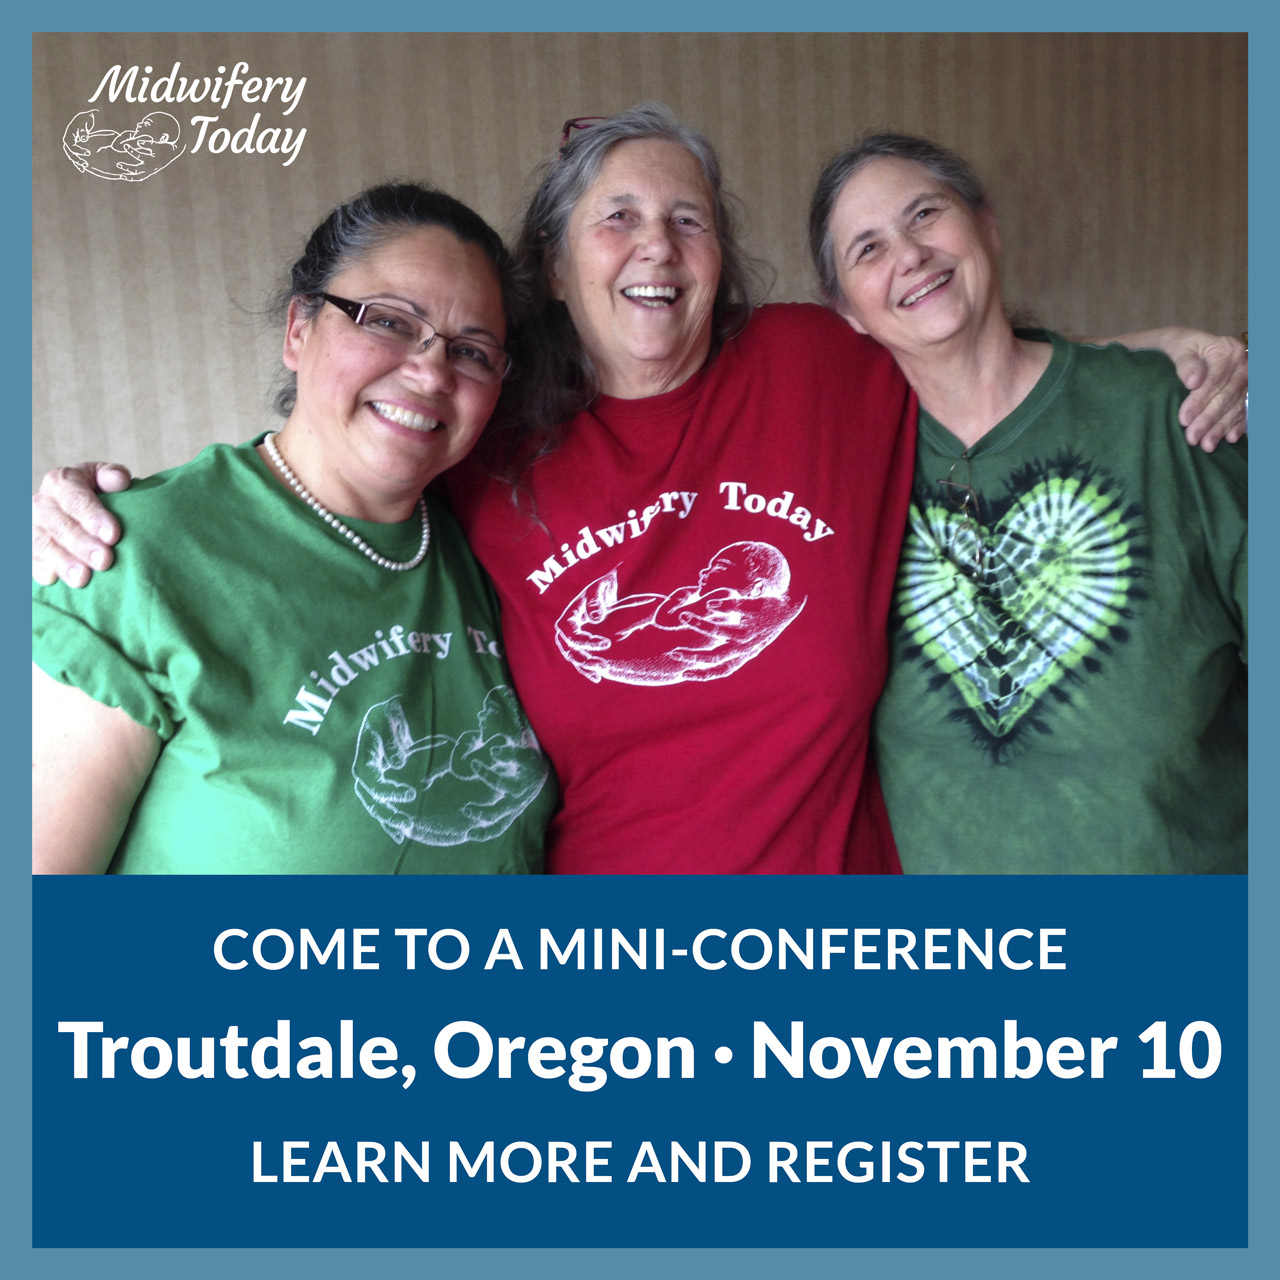 Midwifery Today Mini-Conference/Retreat Troutdale, Oregon   November 10, 2017